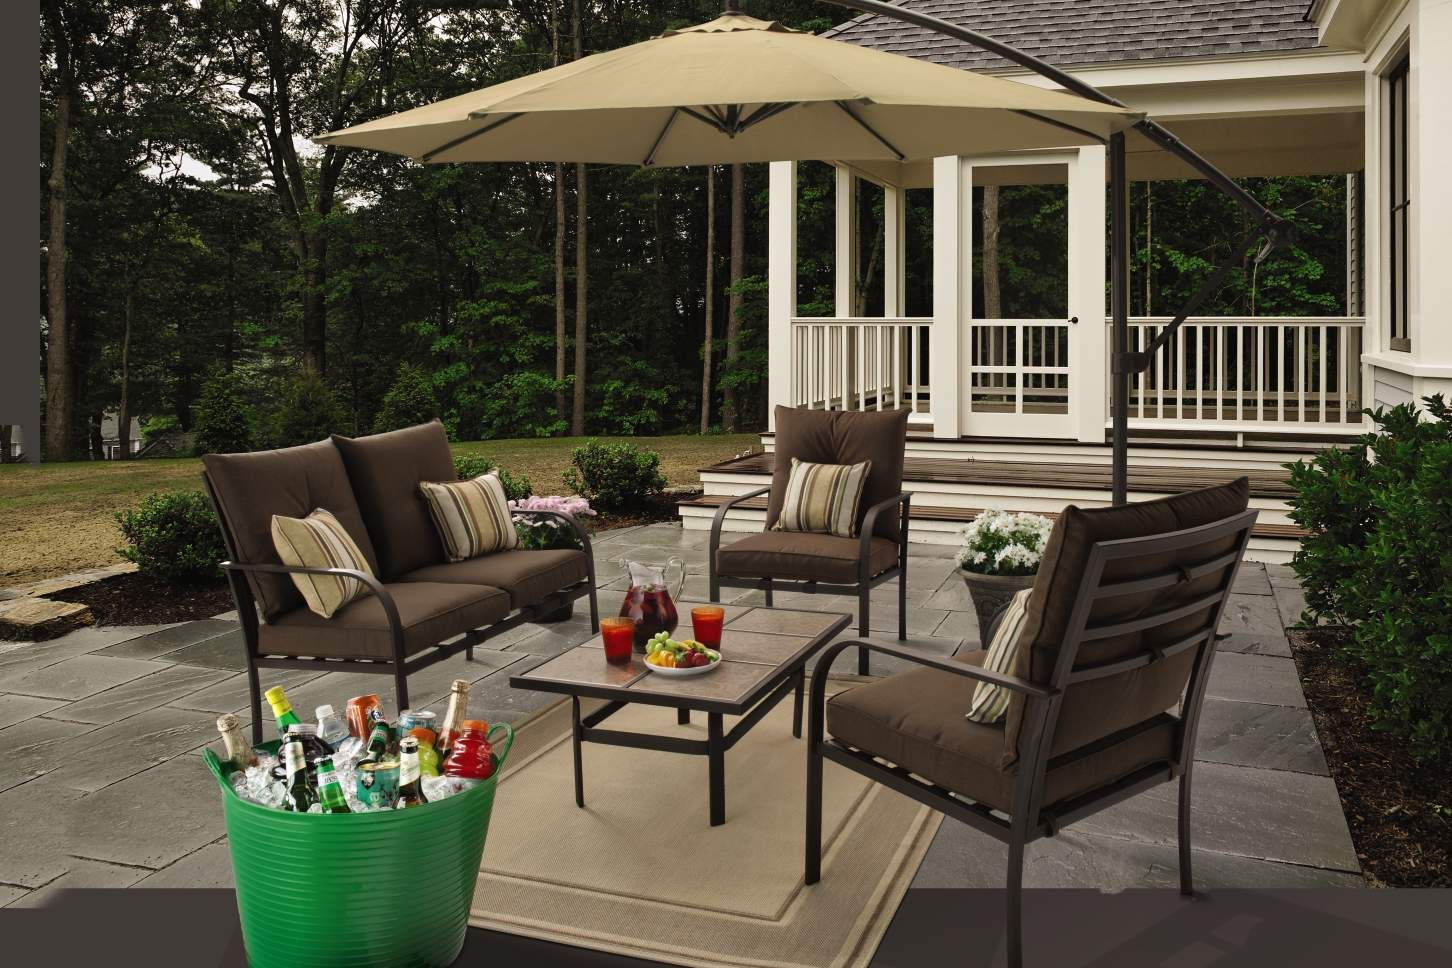 Chicago Outdoor Furniture Sets Patio Furniture Outdoor Decor